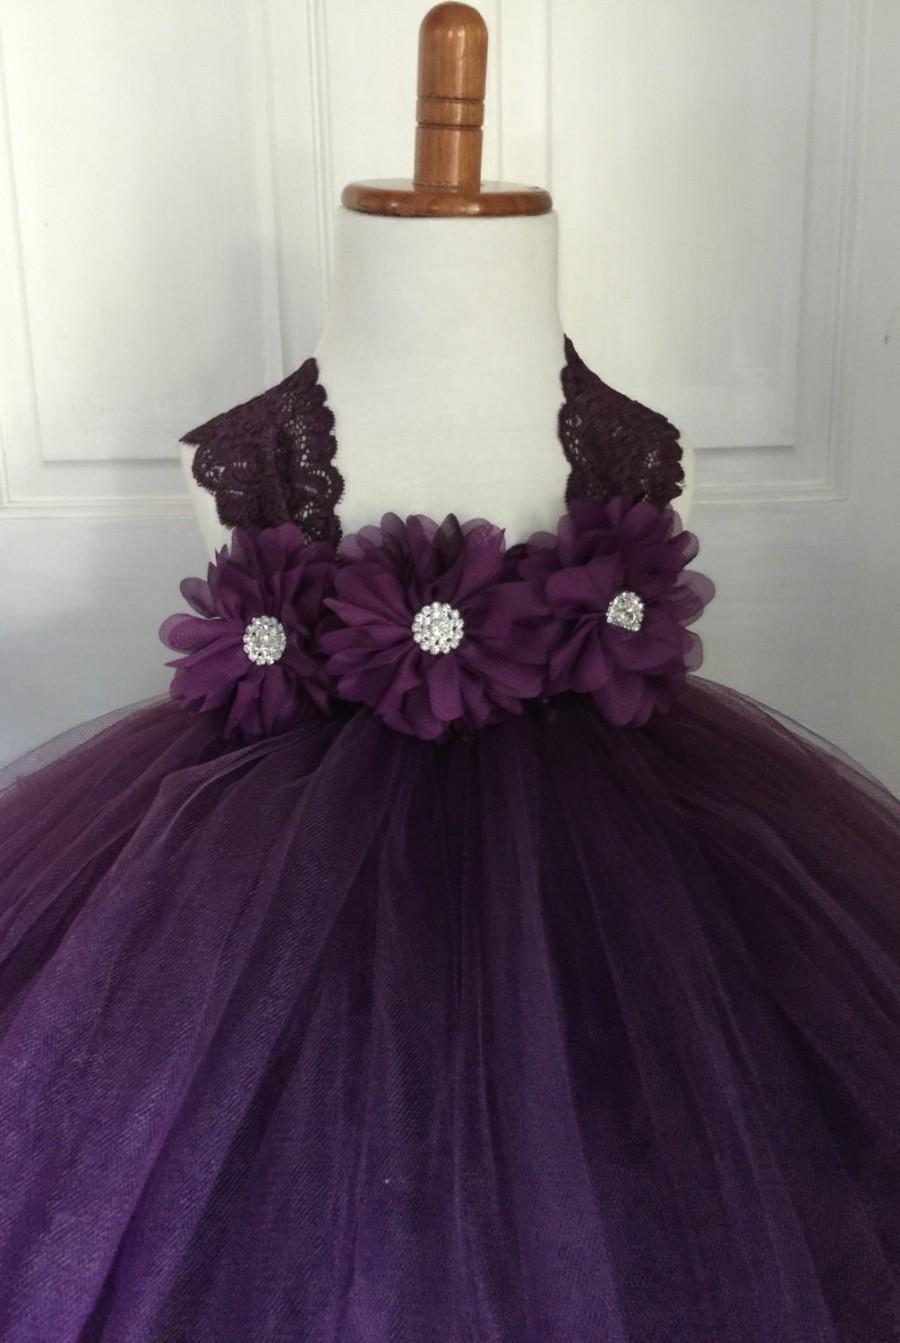 15fda3f54 Plum Flower Girl Satin Lace Tutu Dress, Wedding Dress, Baby Girl, Toddler,  Girls